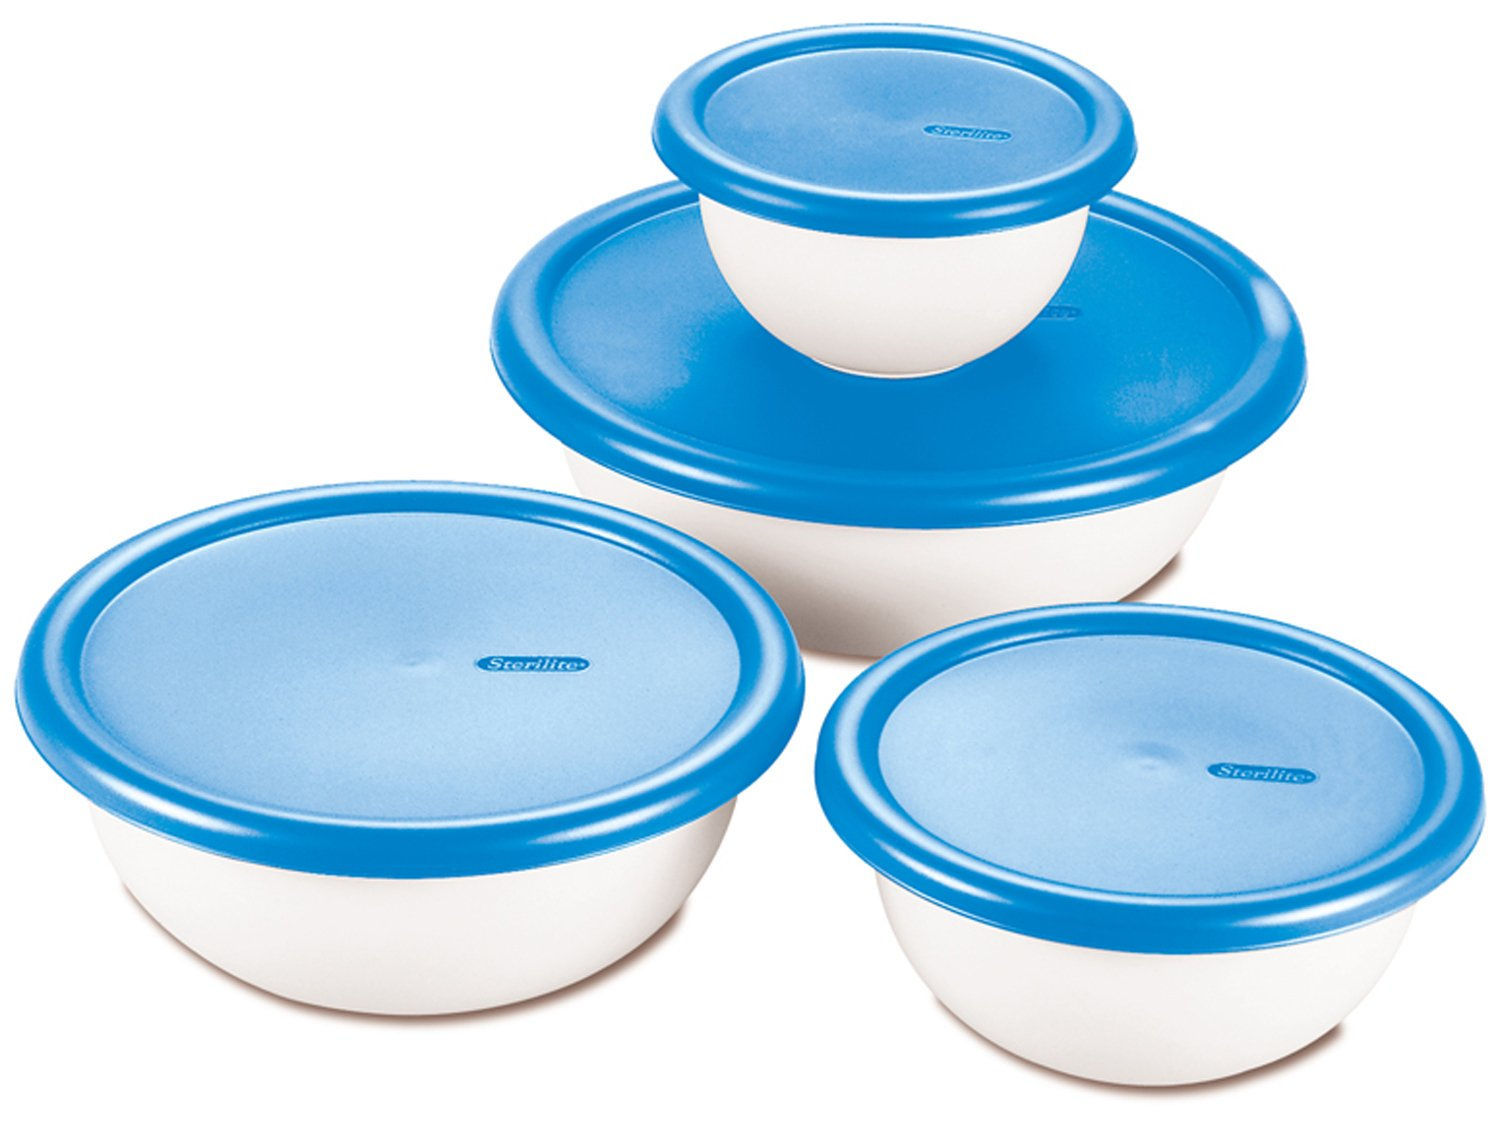 Sterilite 07479406 8 Piece Covered Bowl Set, White & Blue